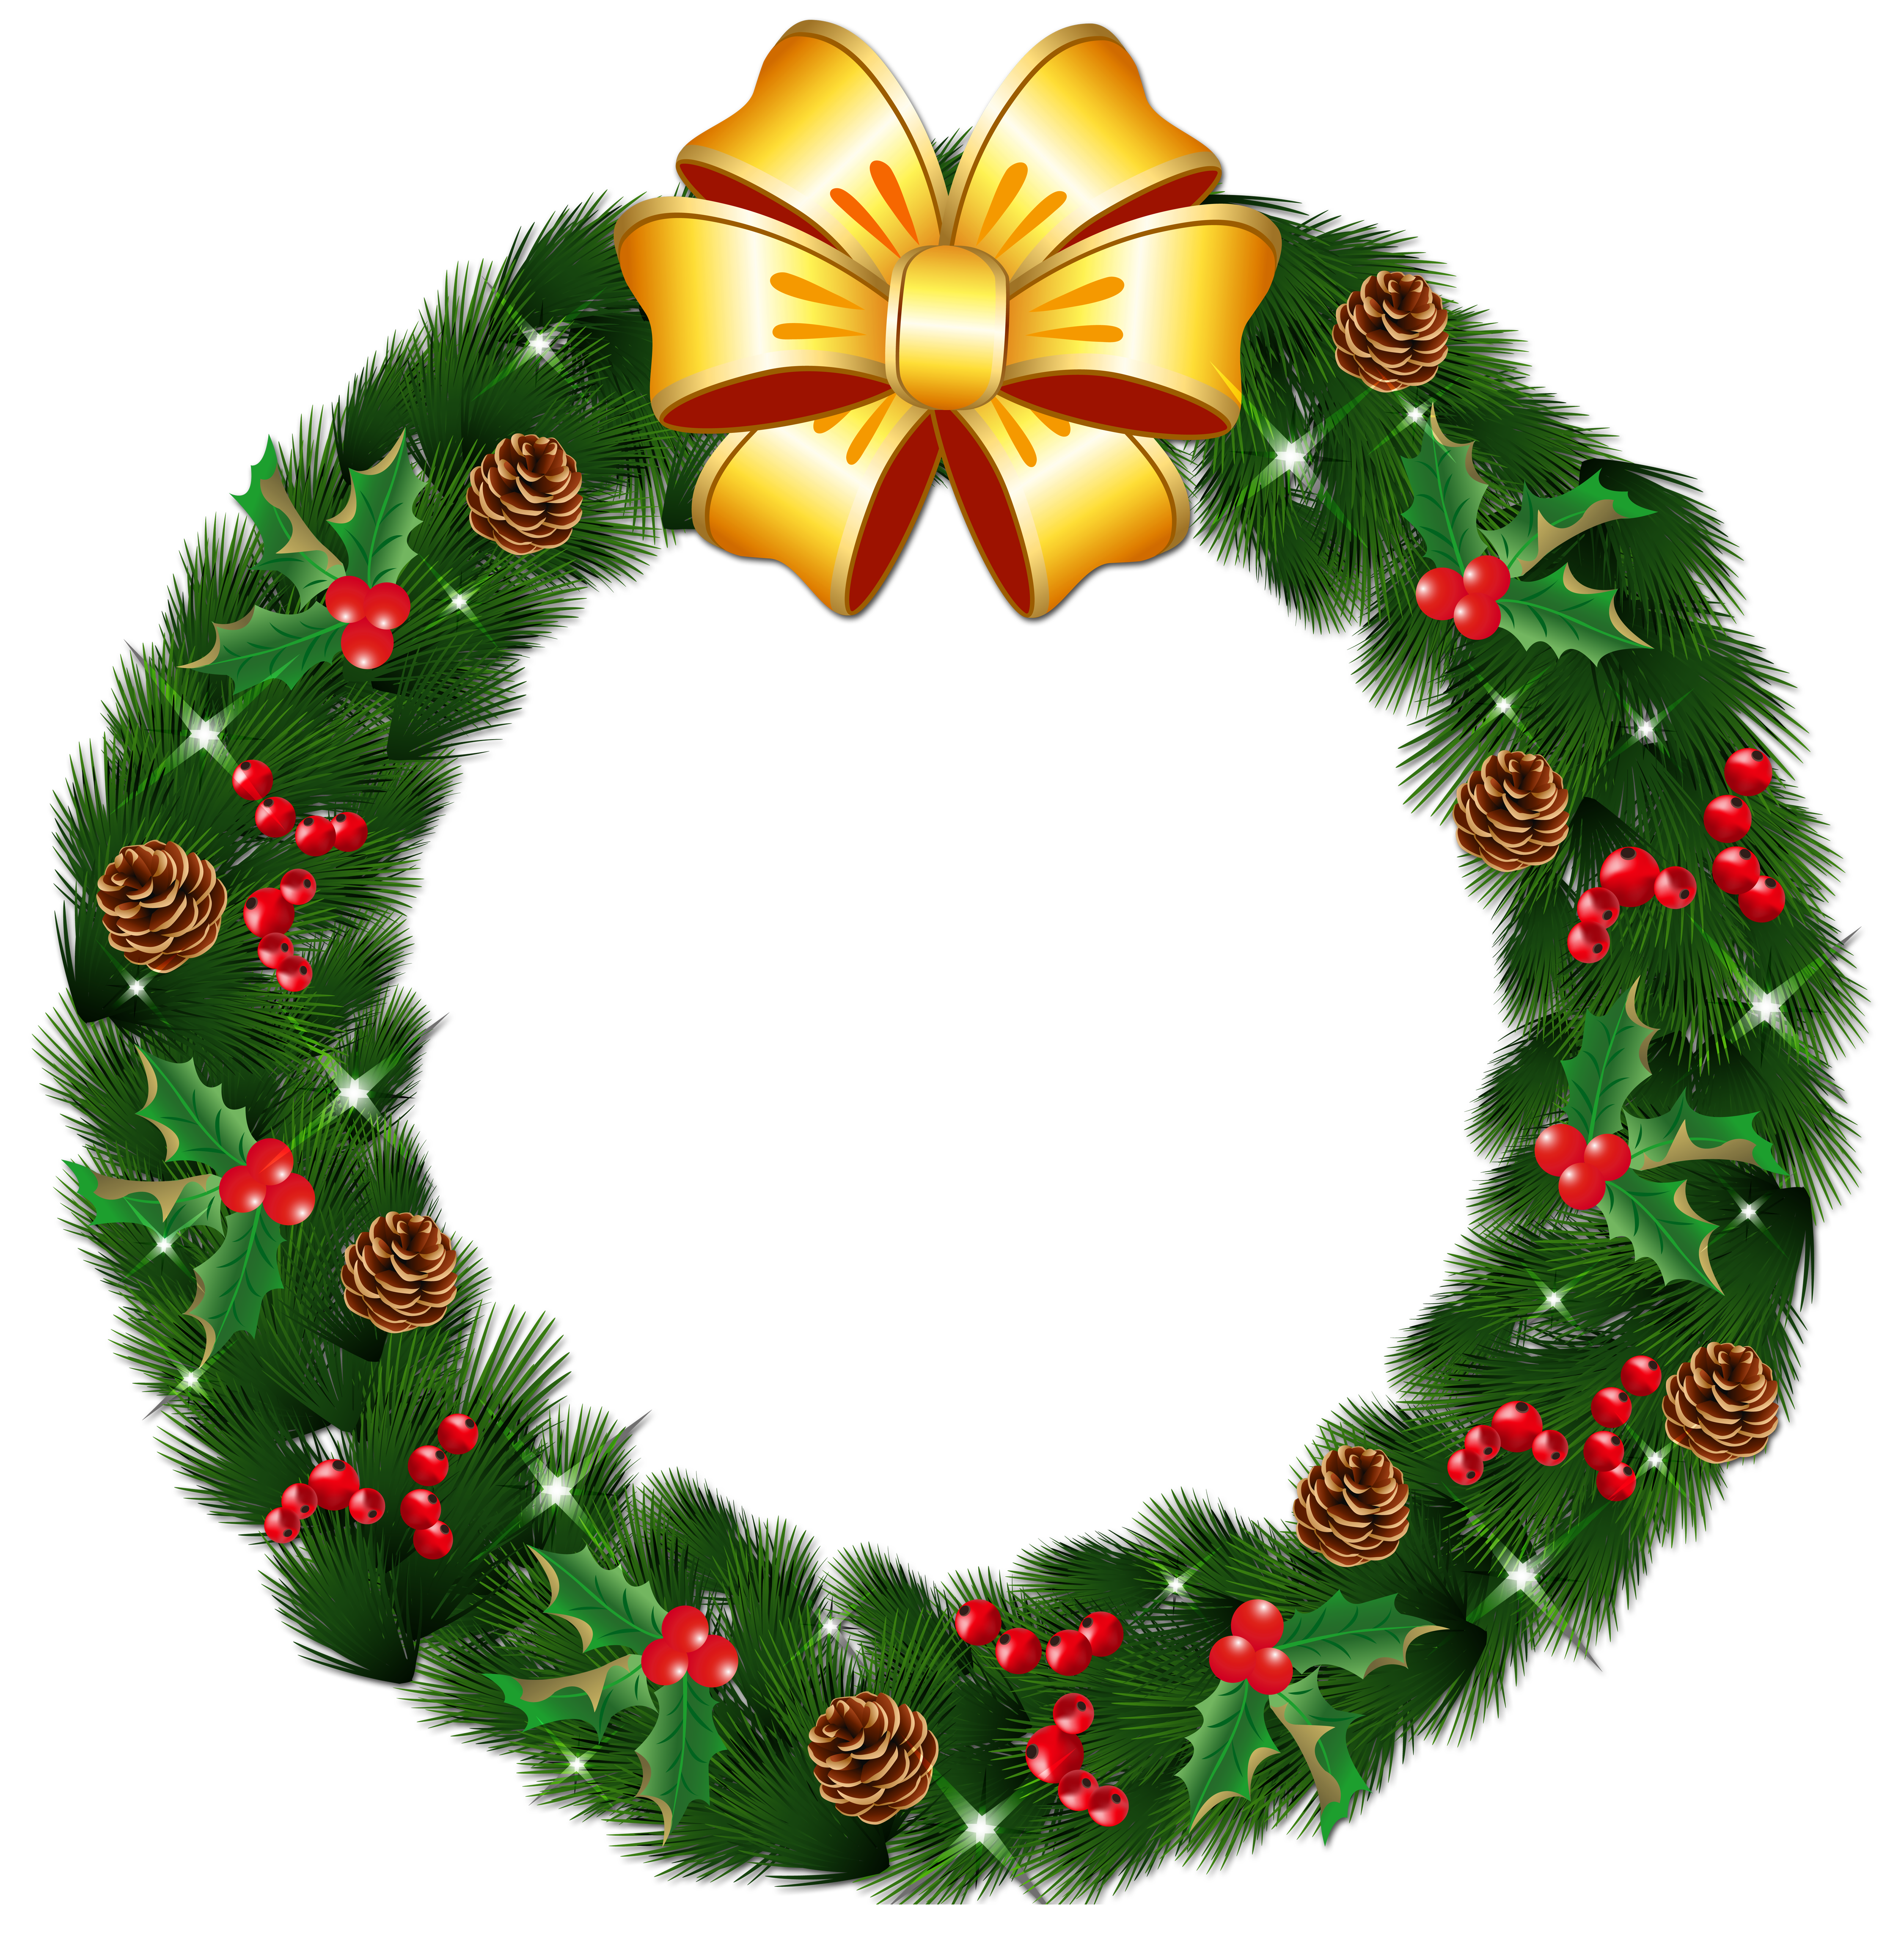 christmas wreath clipart at getdrawings com free for personal use rh getdrawings com clipart holiday wreath free vector clipart christmas wreath